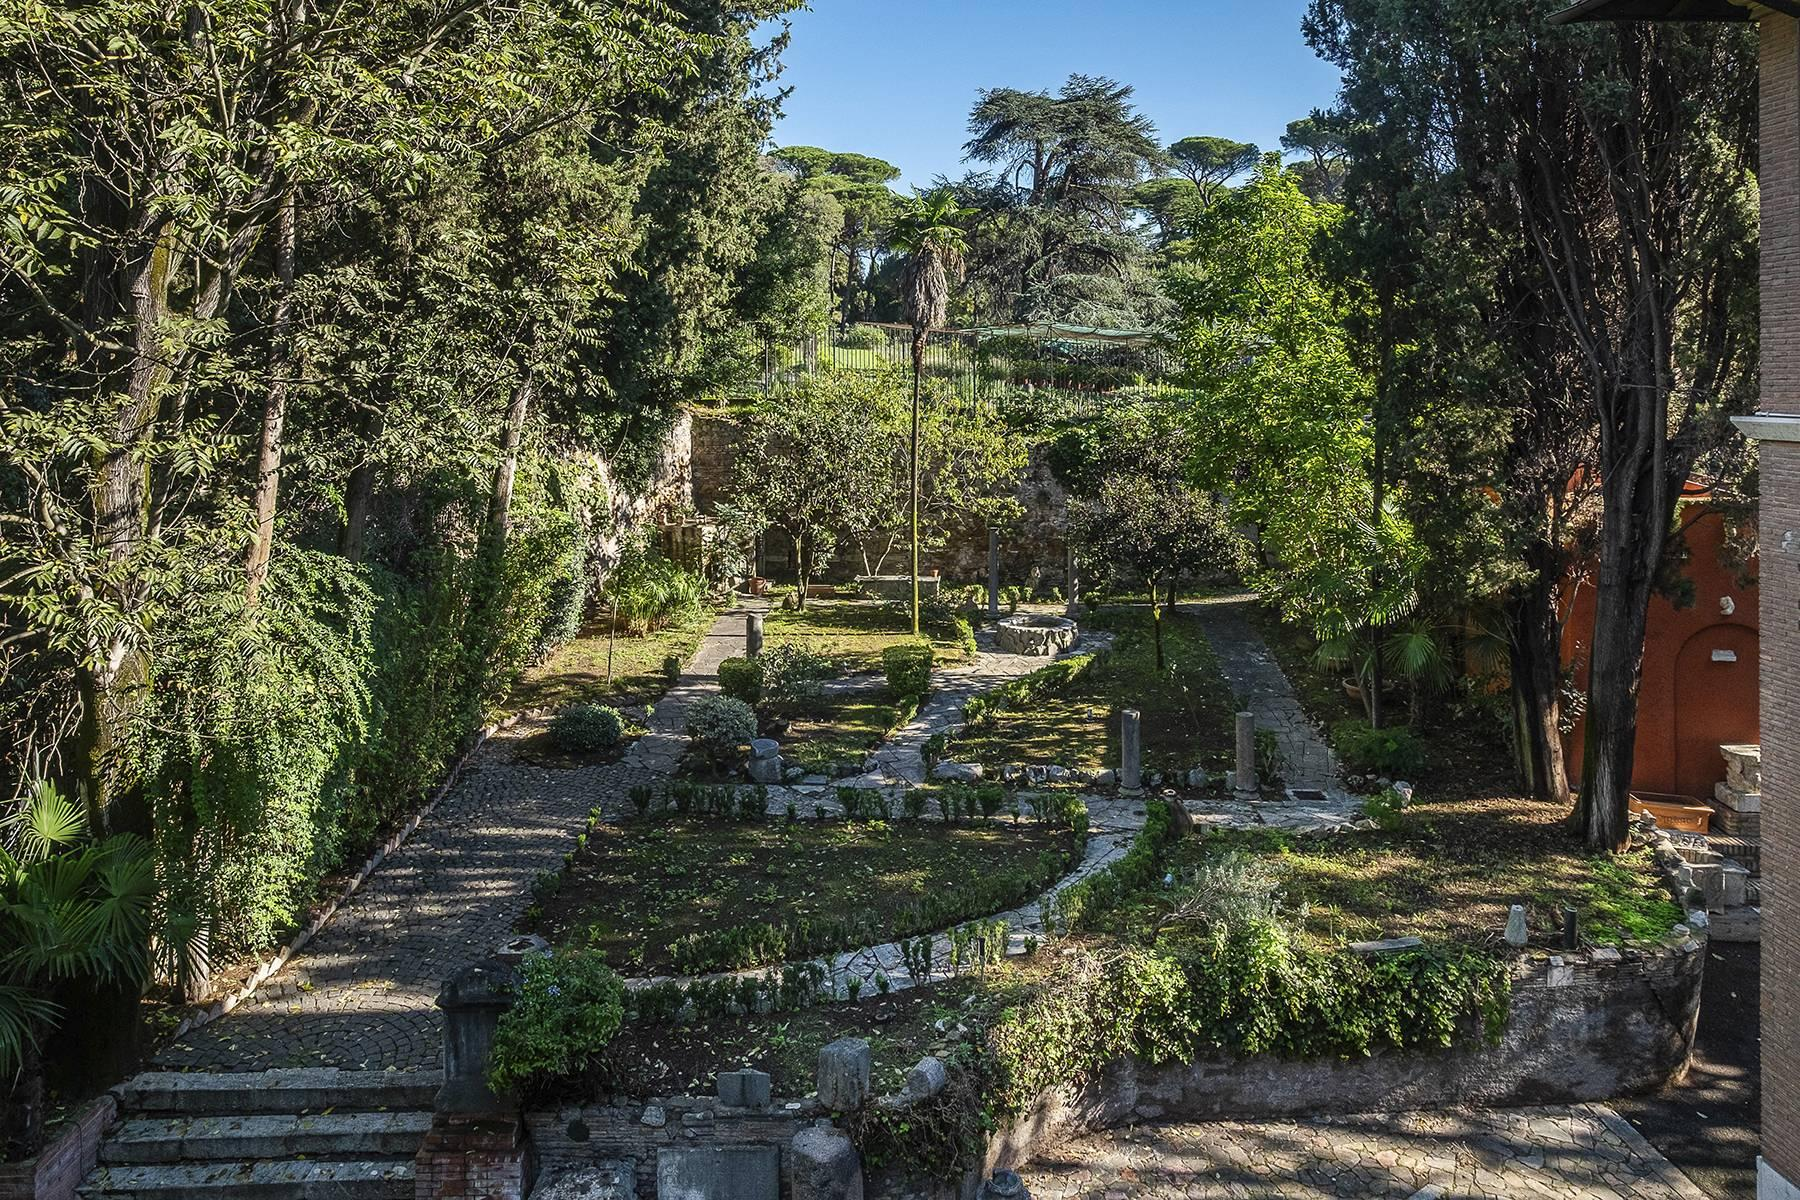 Elegant classical  Villa in the heart of Rome's archaeological ruins - 40